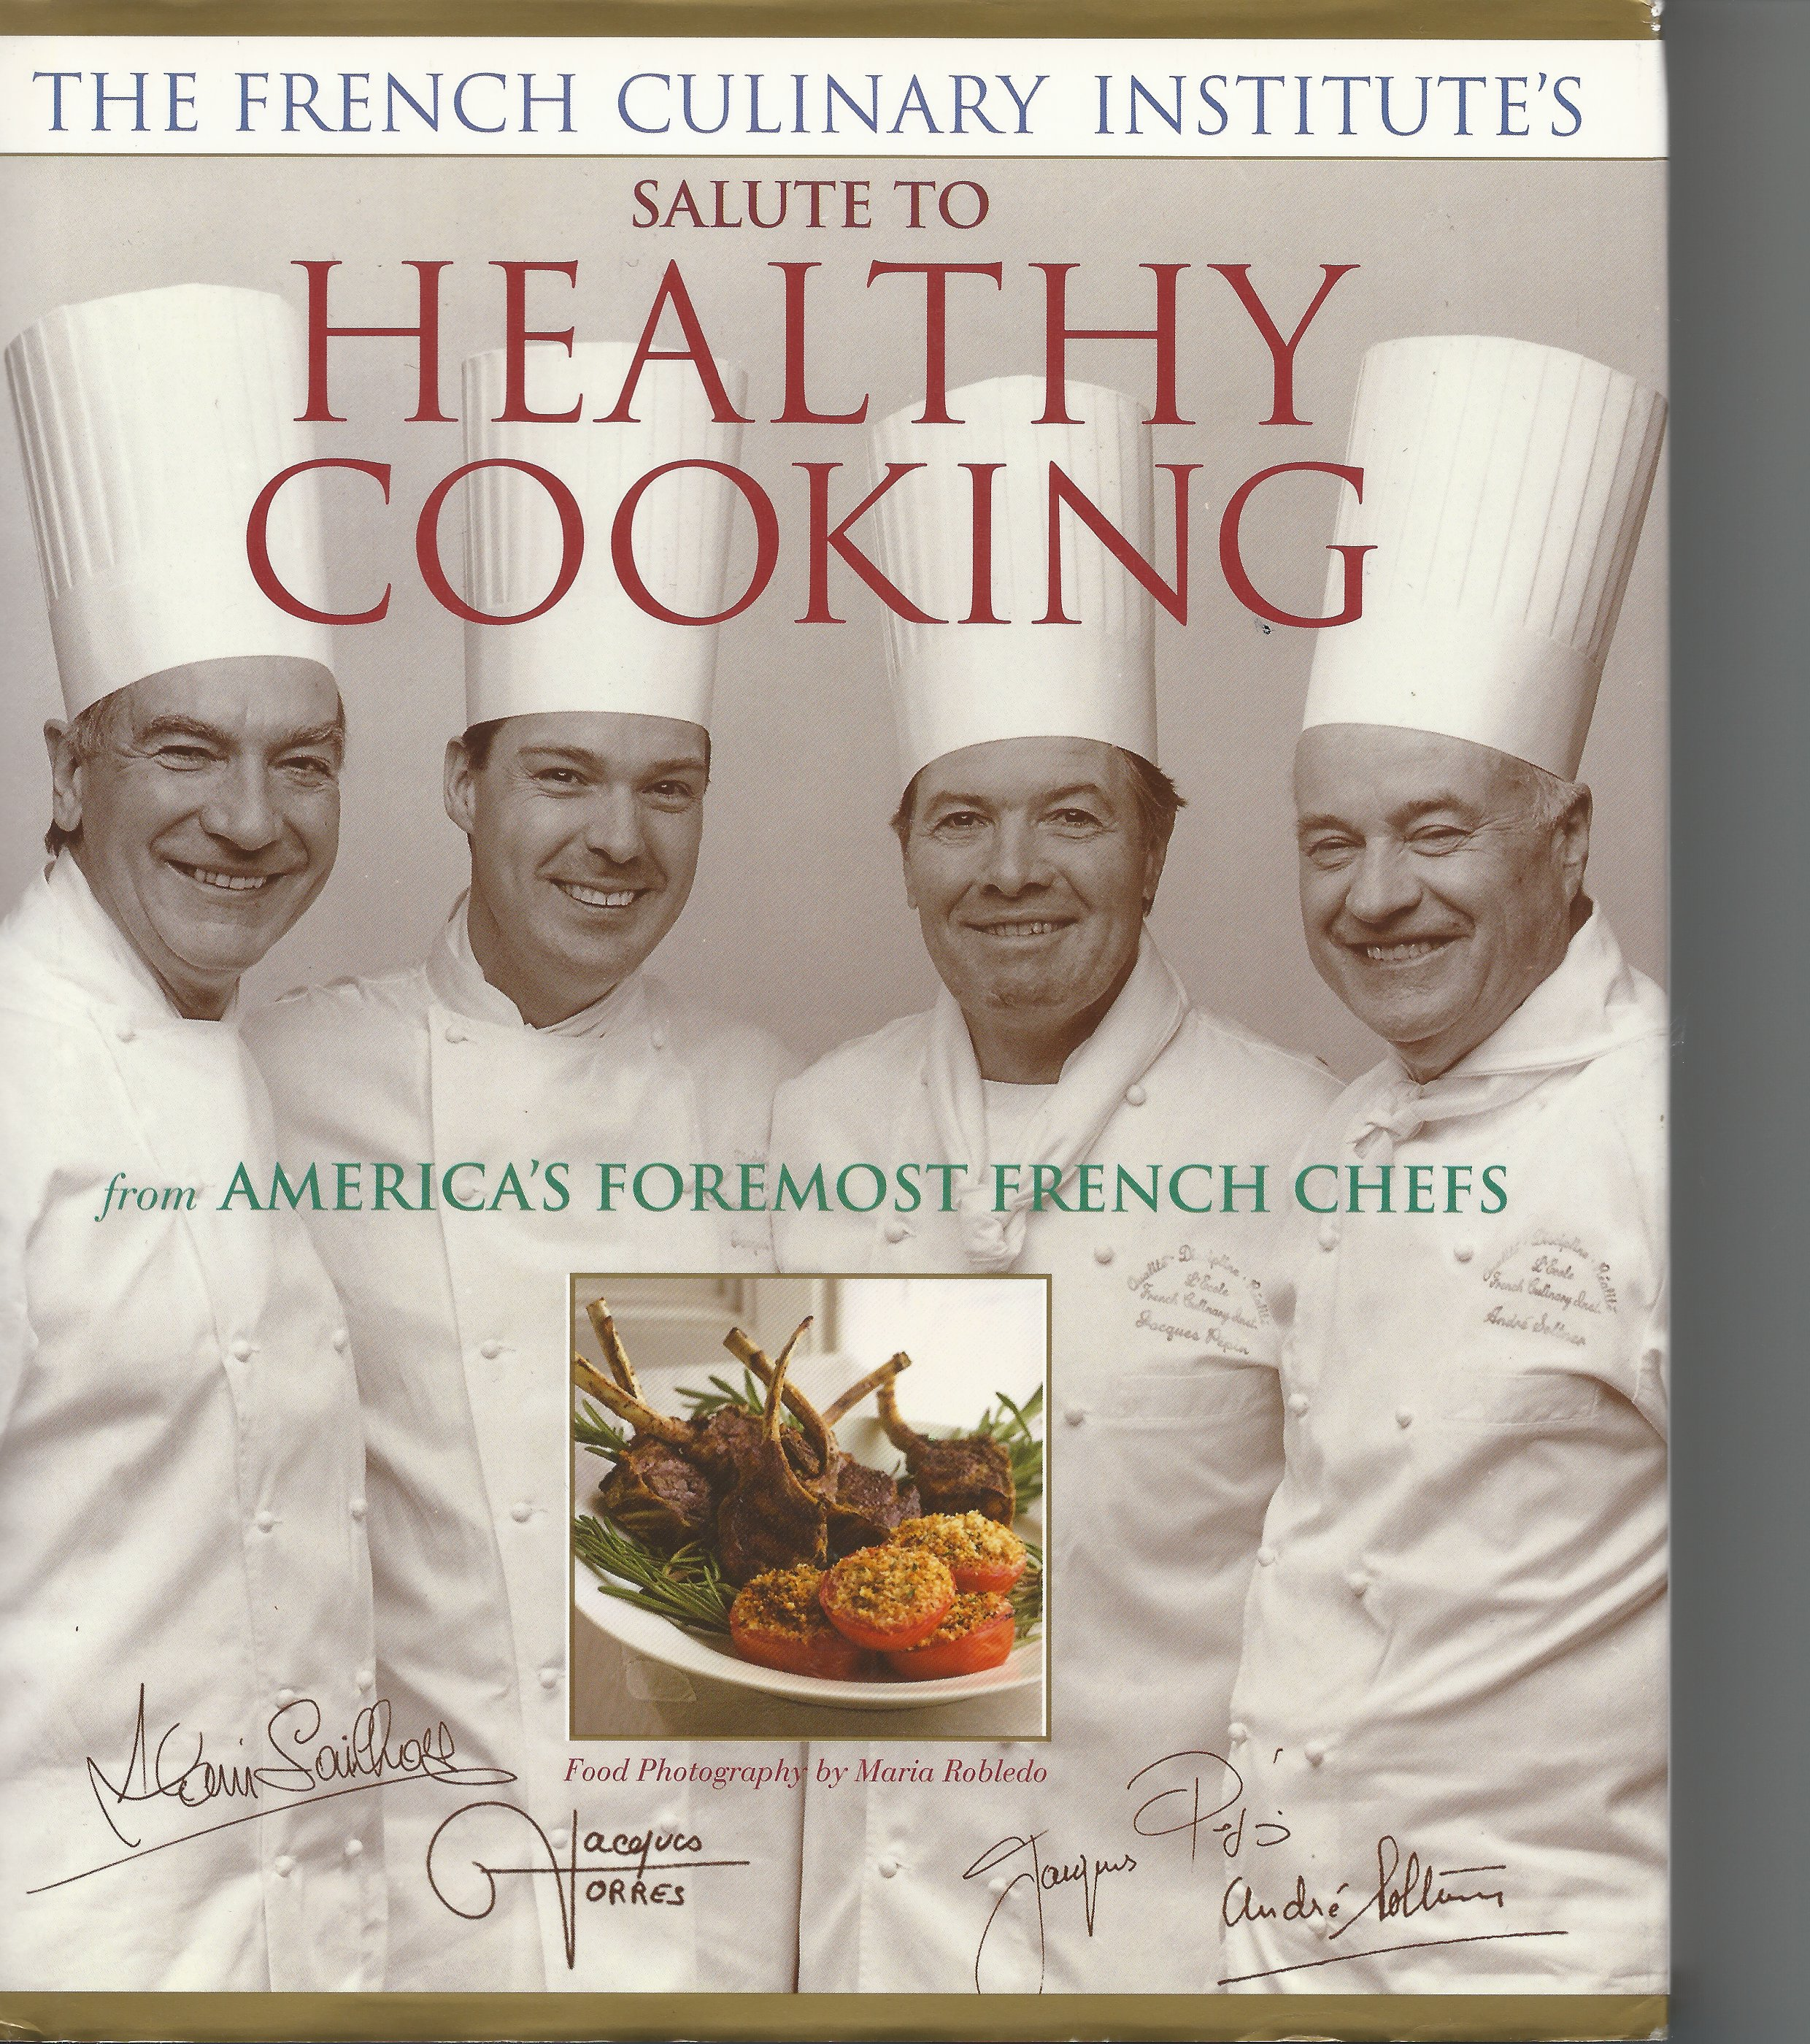 From left to right:  Chef Alain Sailhac ,  Chef Jacques Torres ,  Chef Jacques Pépin ,  Chef André Soltner .  They each autographed this book and gave it to me as a gift when I departed the International Culinary Center in New York before I moved here to LA to launch Chef Janet Crandall private catering.